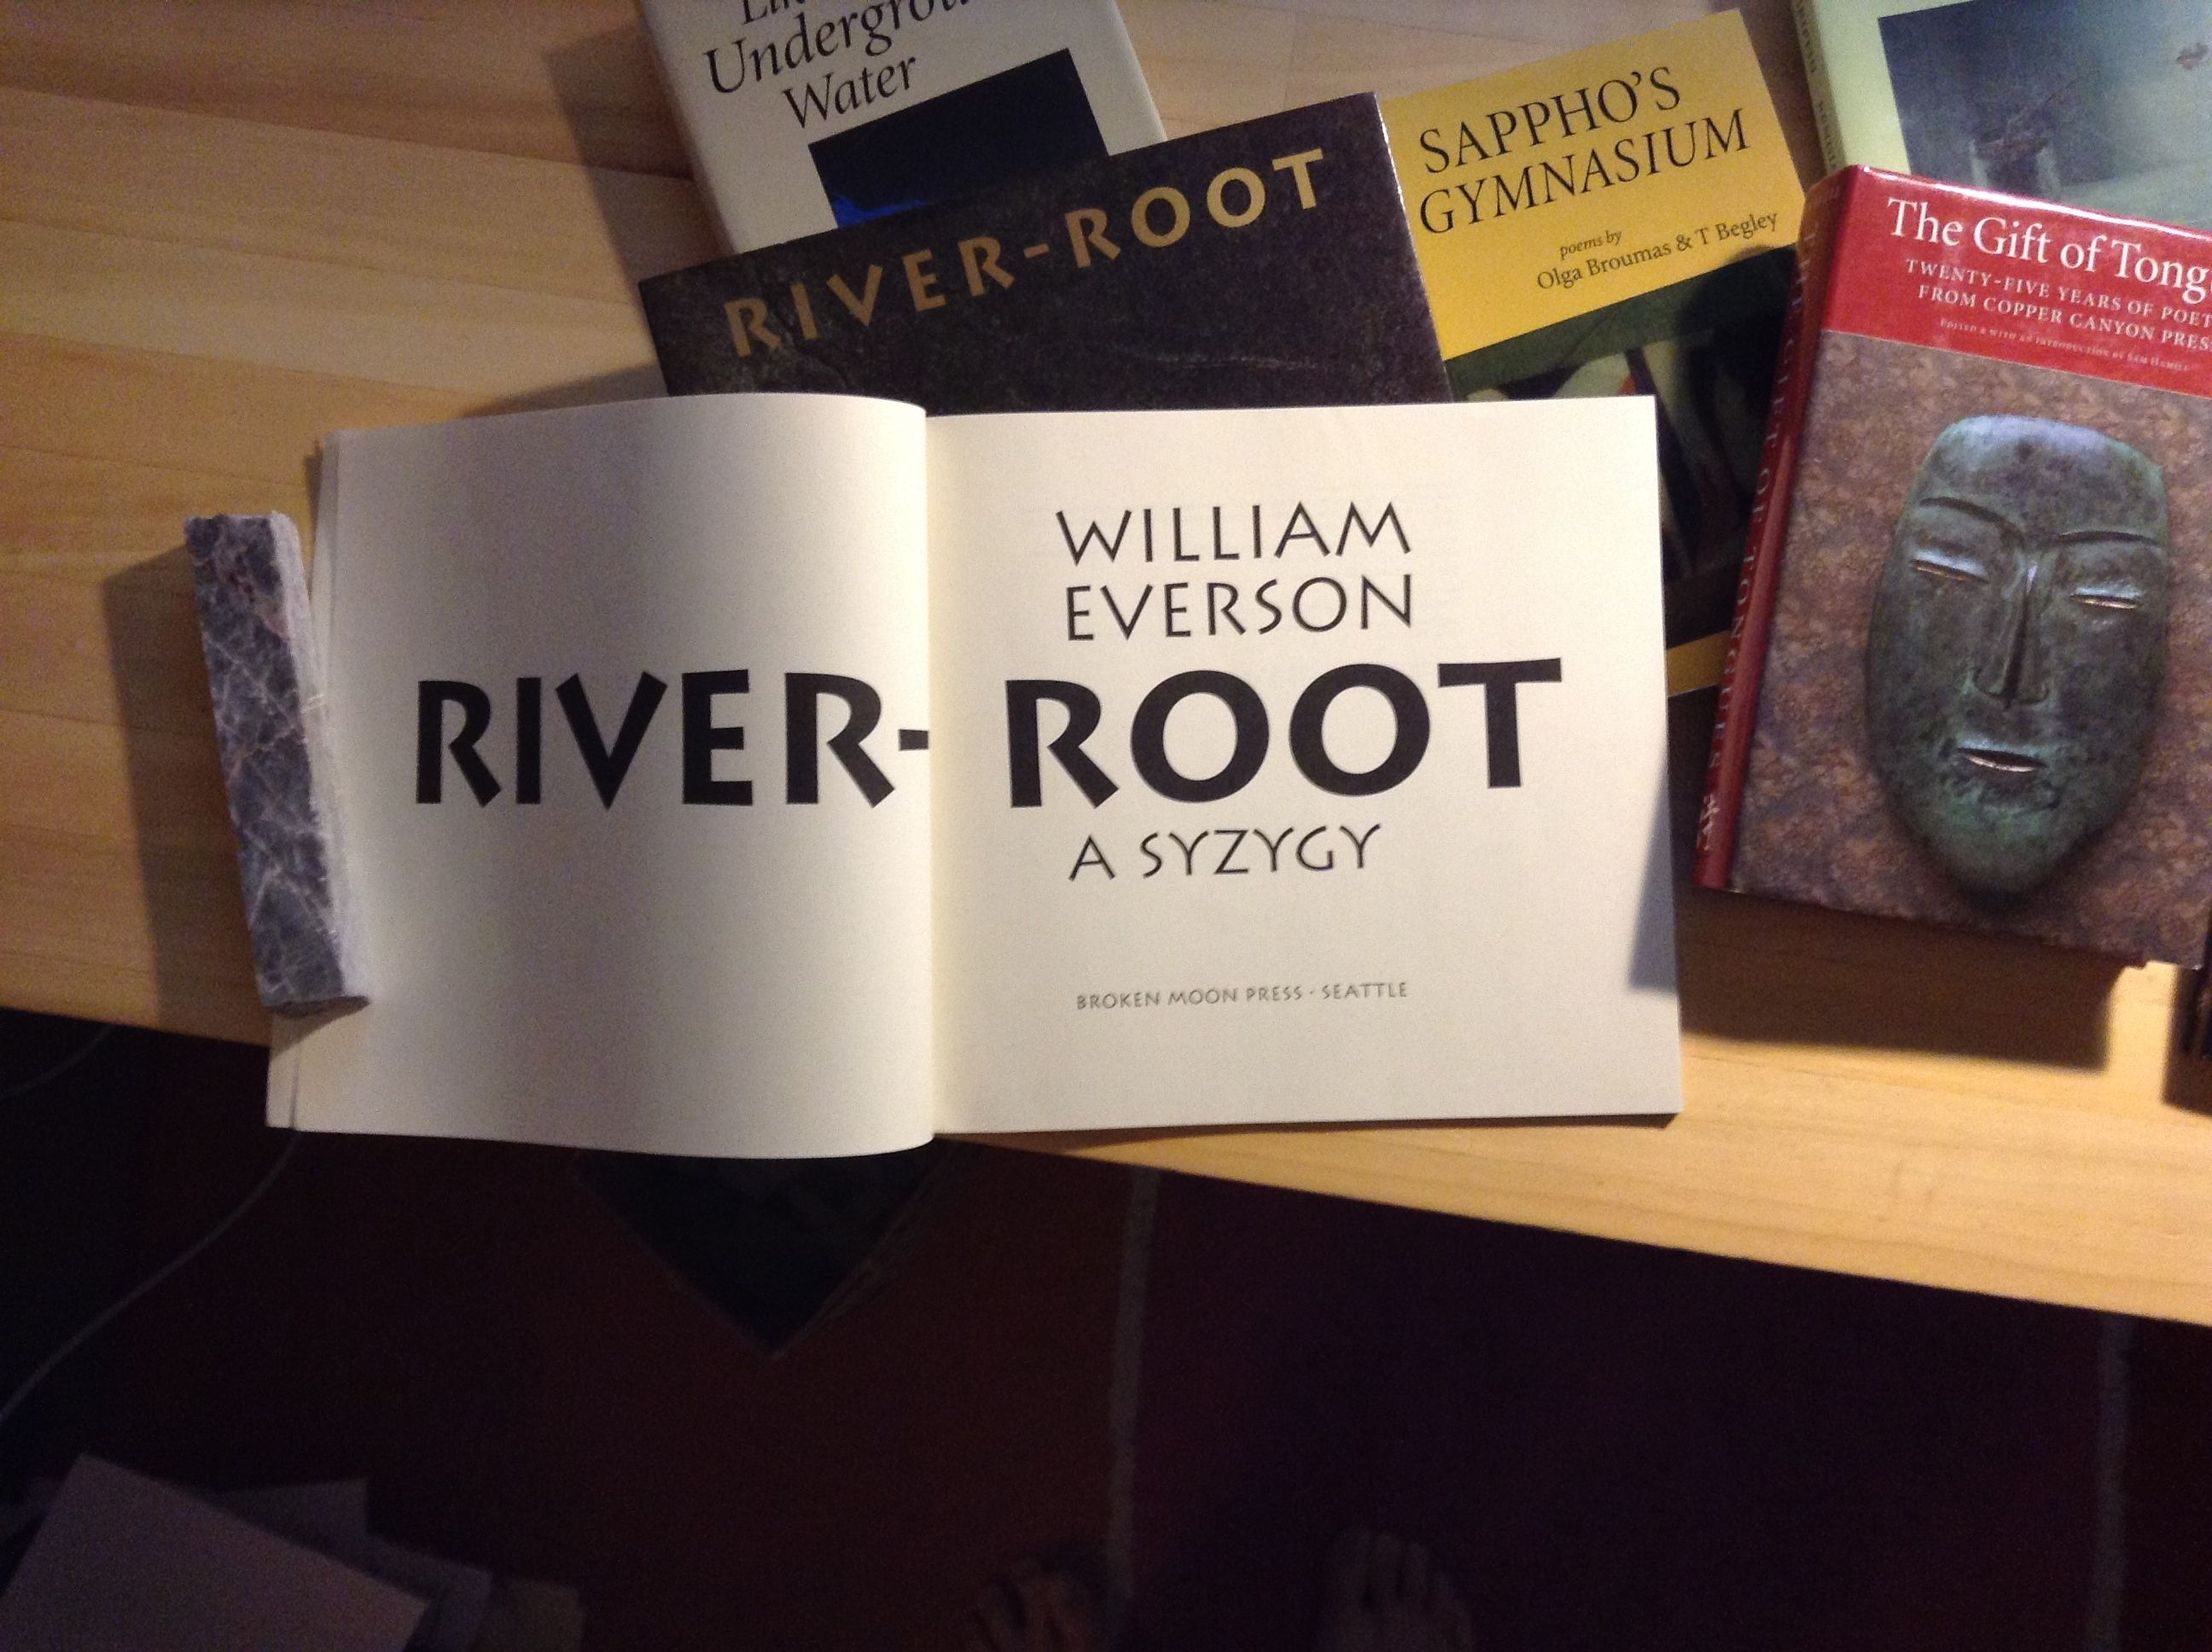 """Carol Twombly's Lithos is featured in this Broken Moon Press edition of William Everson's """"River-Root,"""" designed by John D. Berry."""